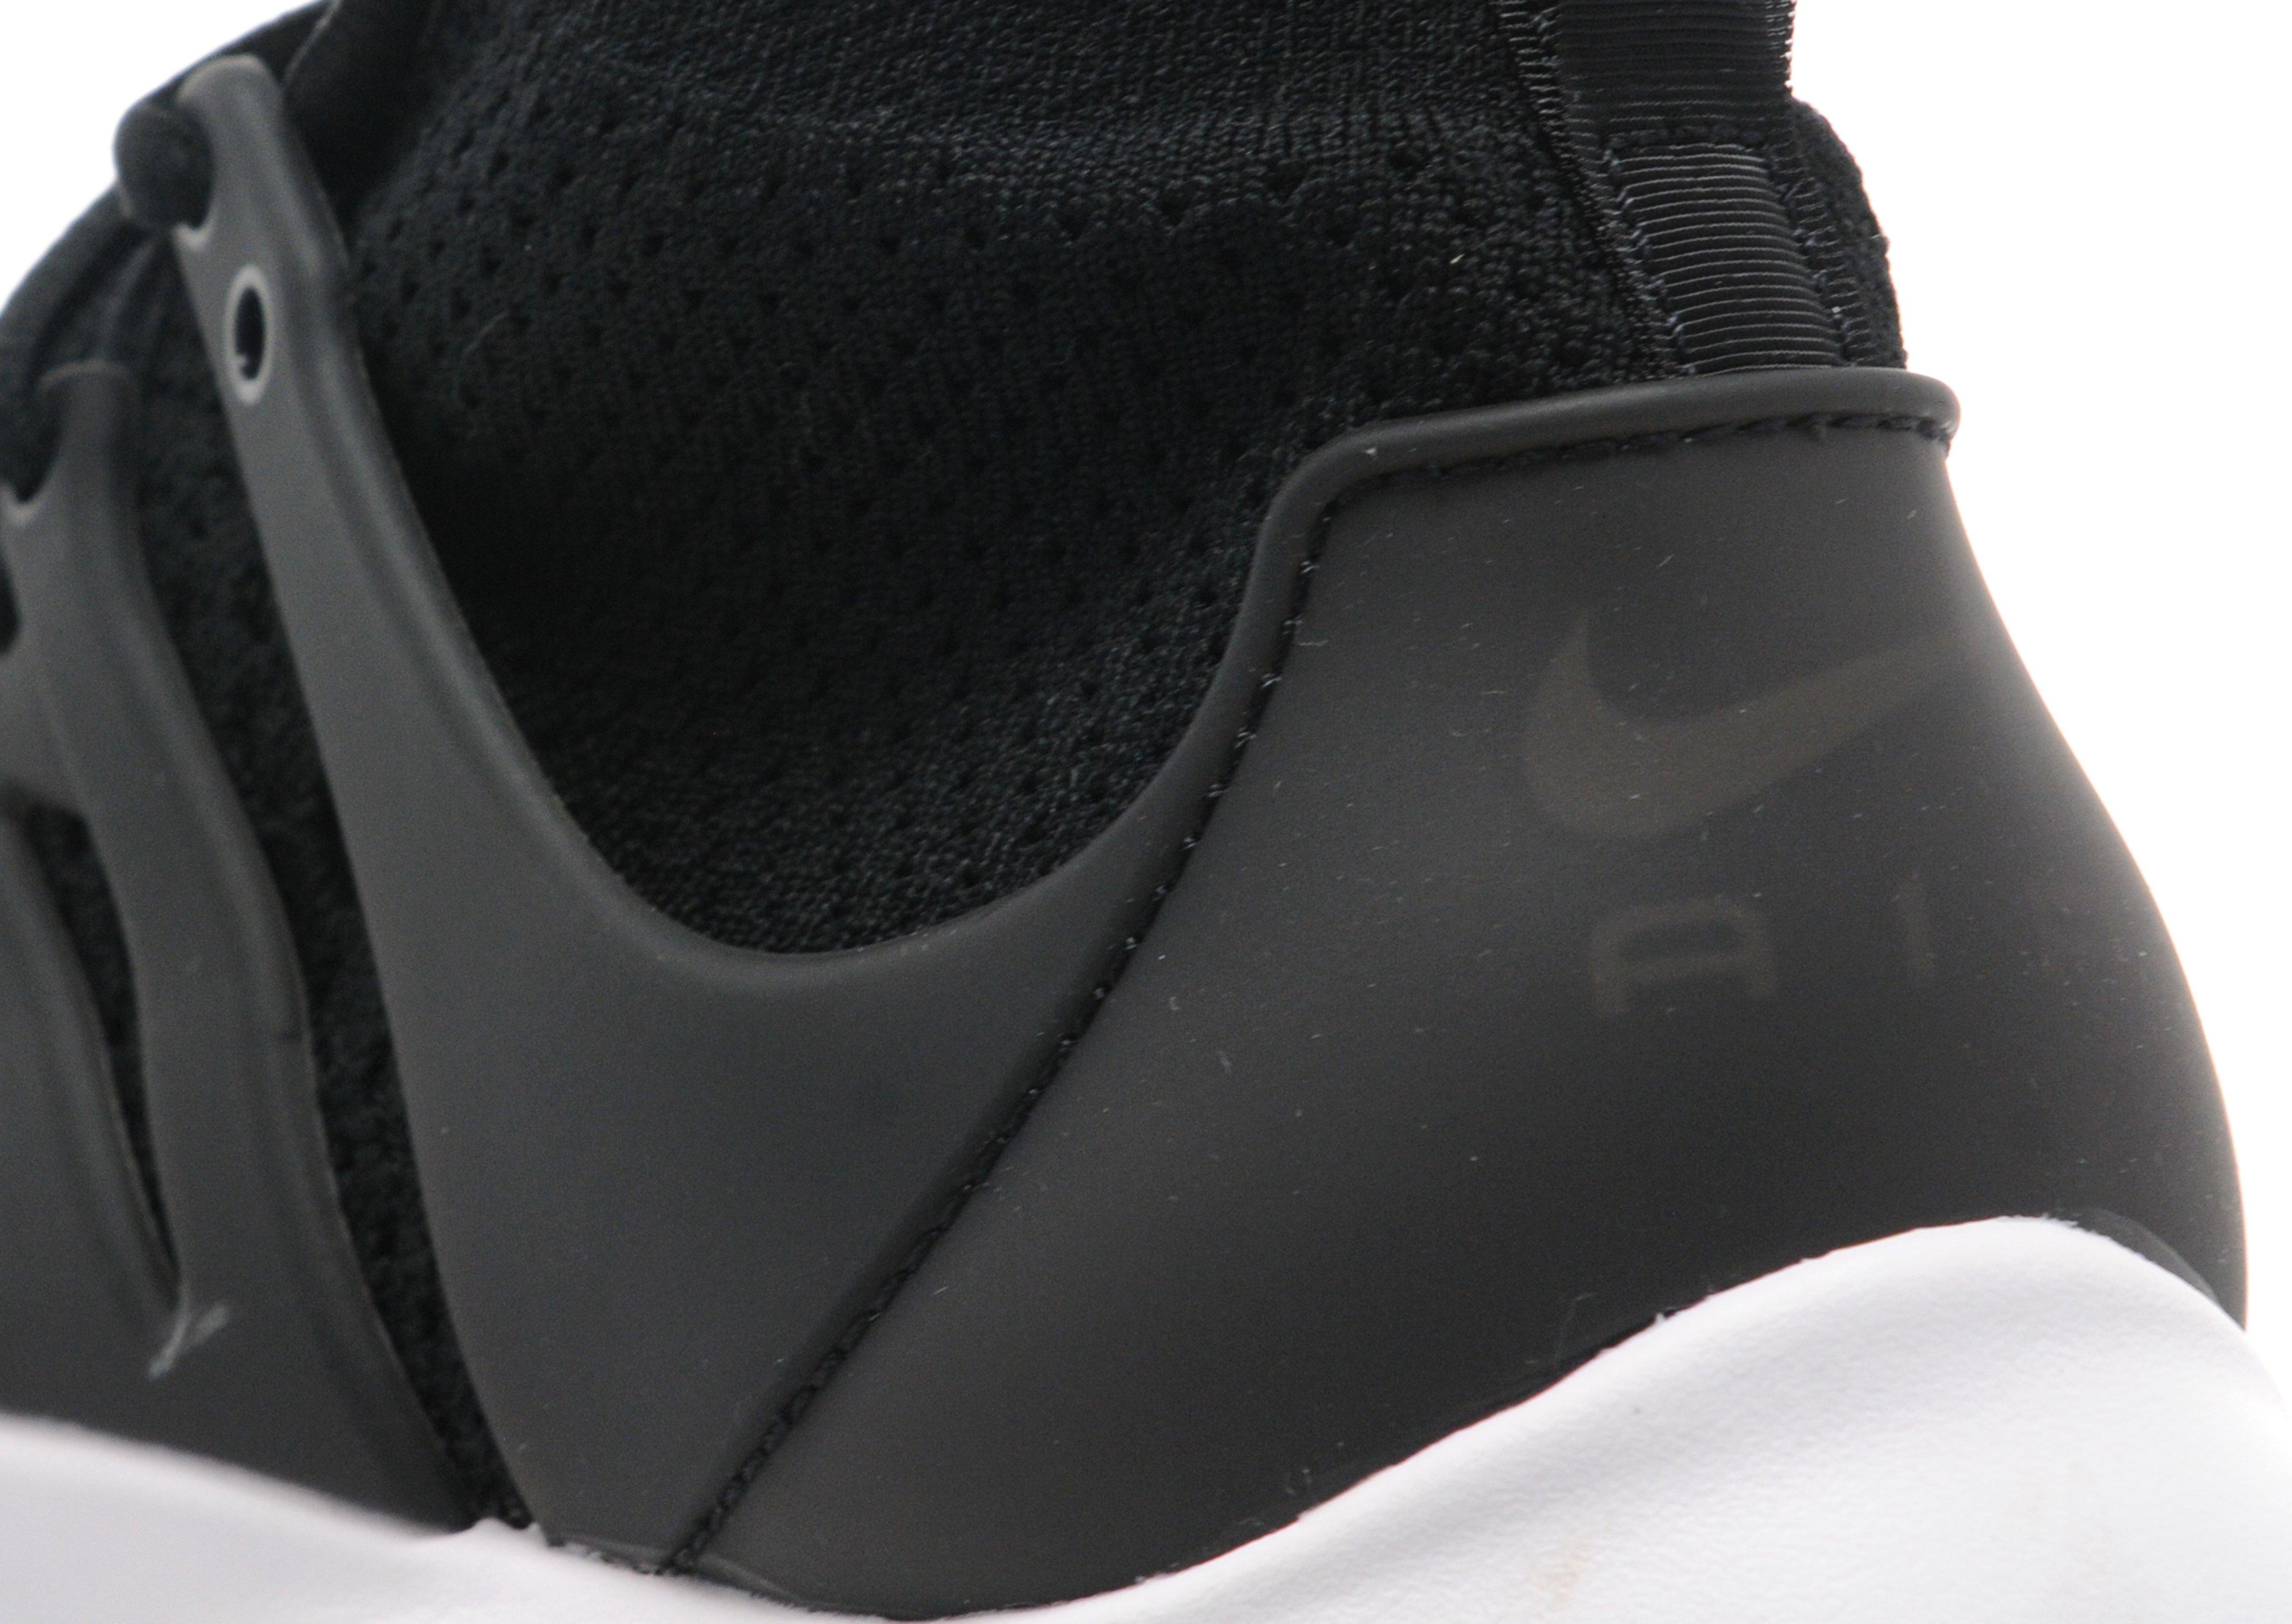 91333ac41 Nike Factory Outlet Karachi Gym Shoes